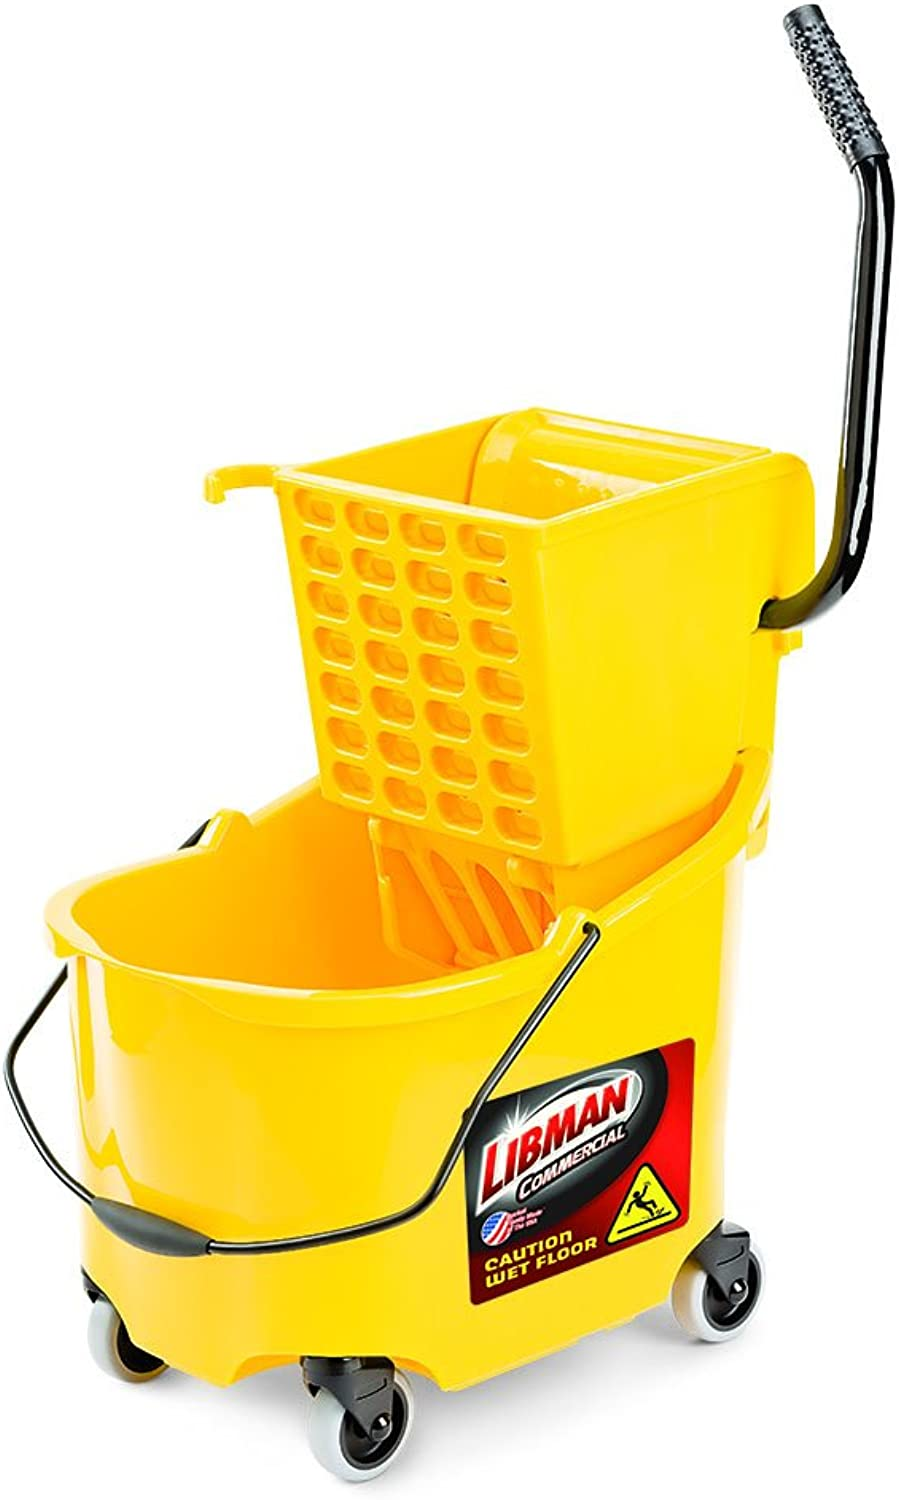 Libman Commercial 933 26 Quart Mop Bucket and Wringer, 36  Length, 16  Width, Yellow